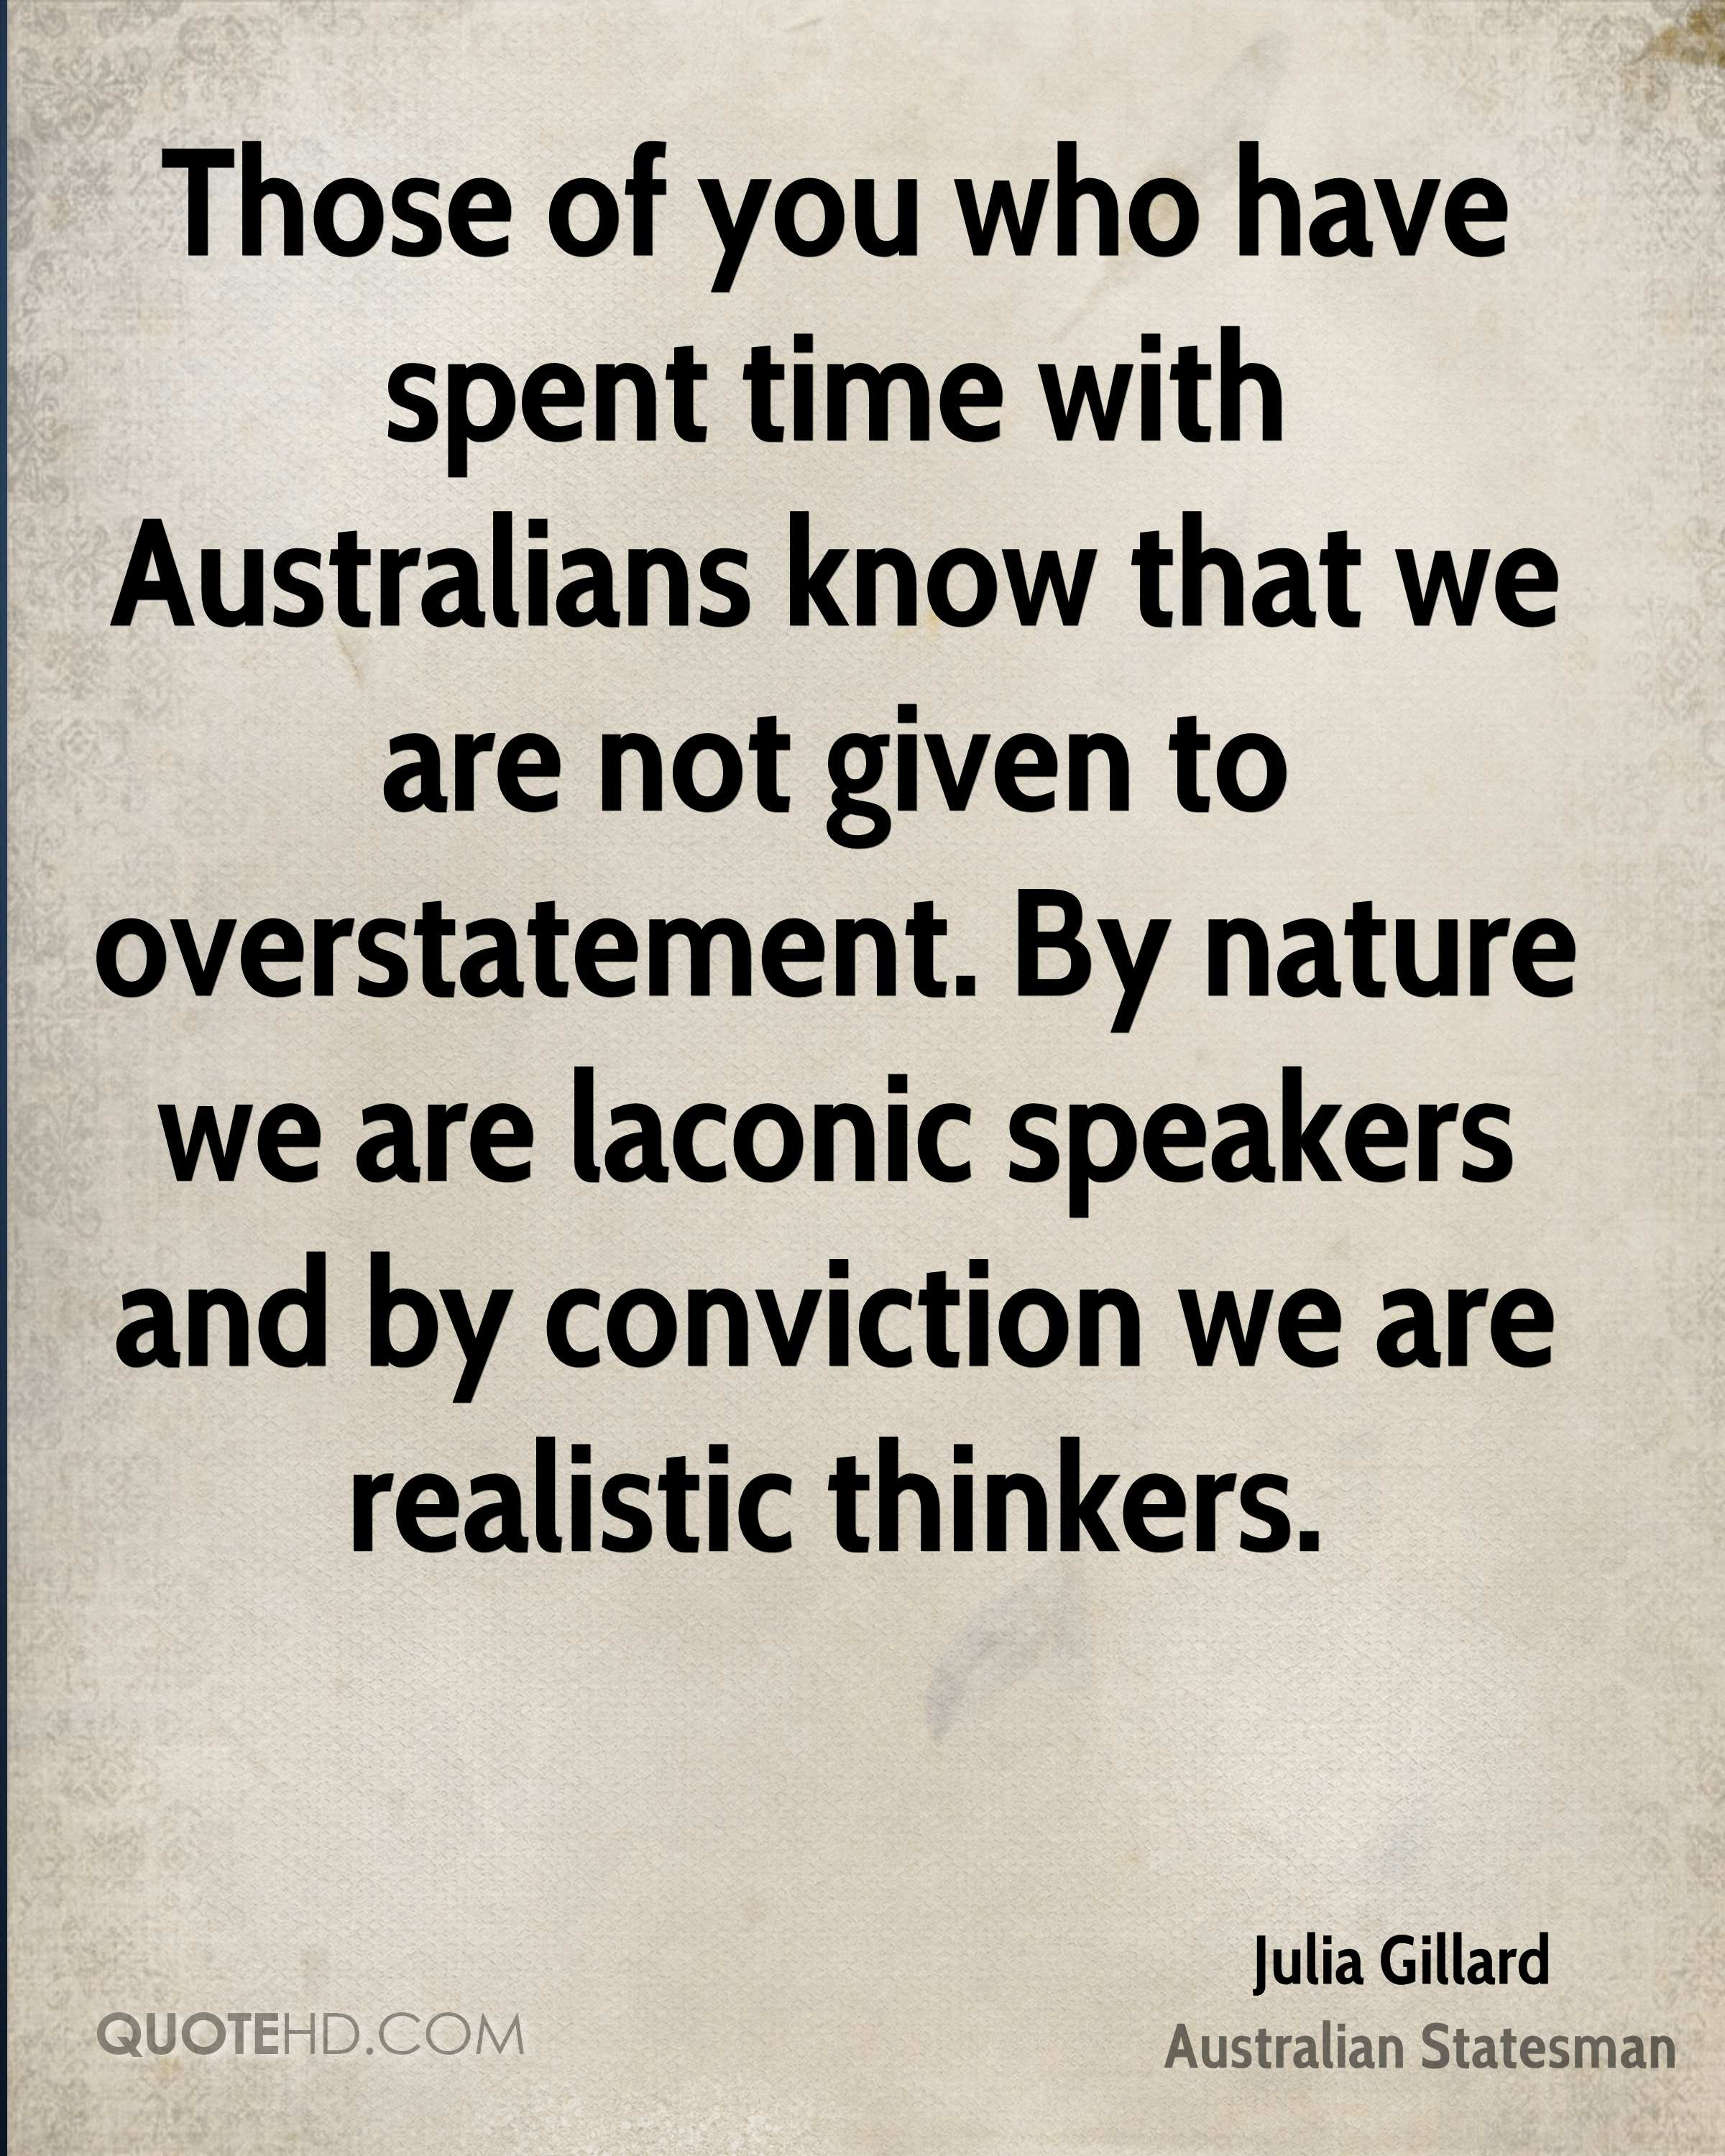 Those of you who have spent time with Australians know that we are not given to overstatement. By nature we are laconic speakers and by conviction we are realistic thinkers.